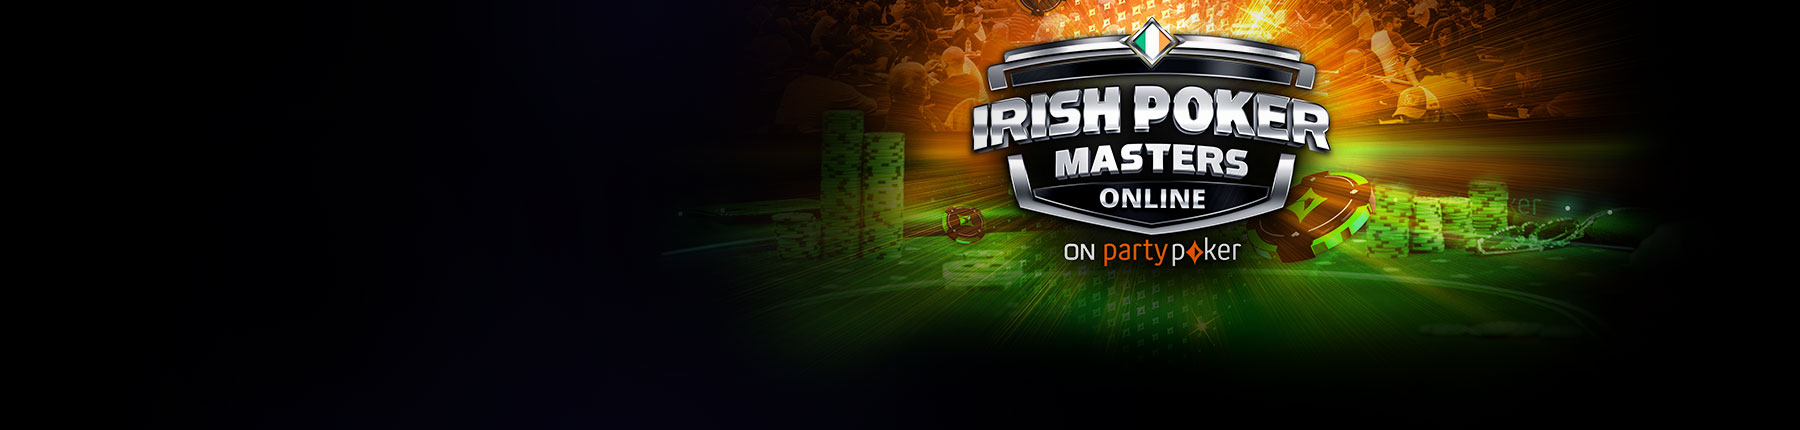 irish-poker-masters-phoenix-hp-slider